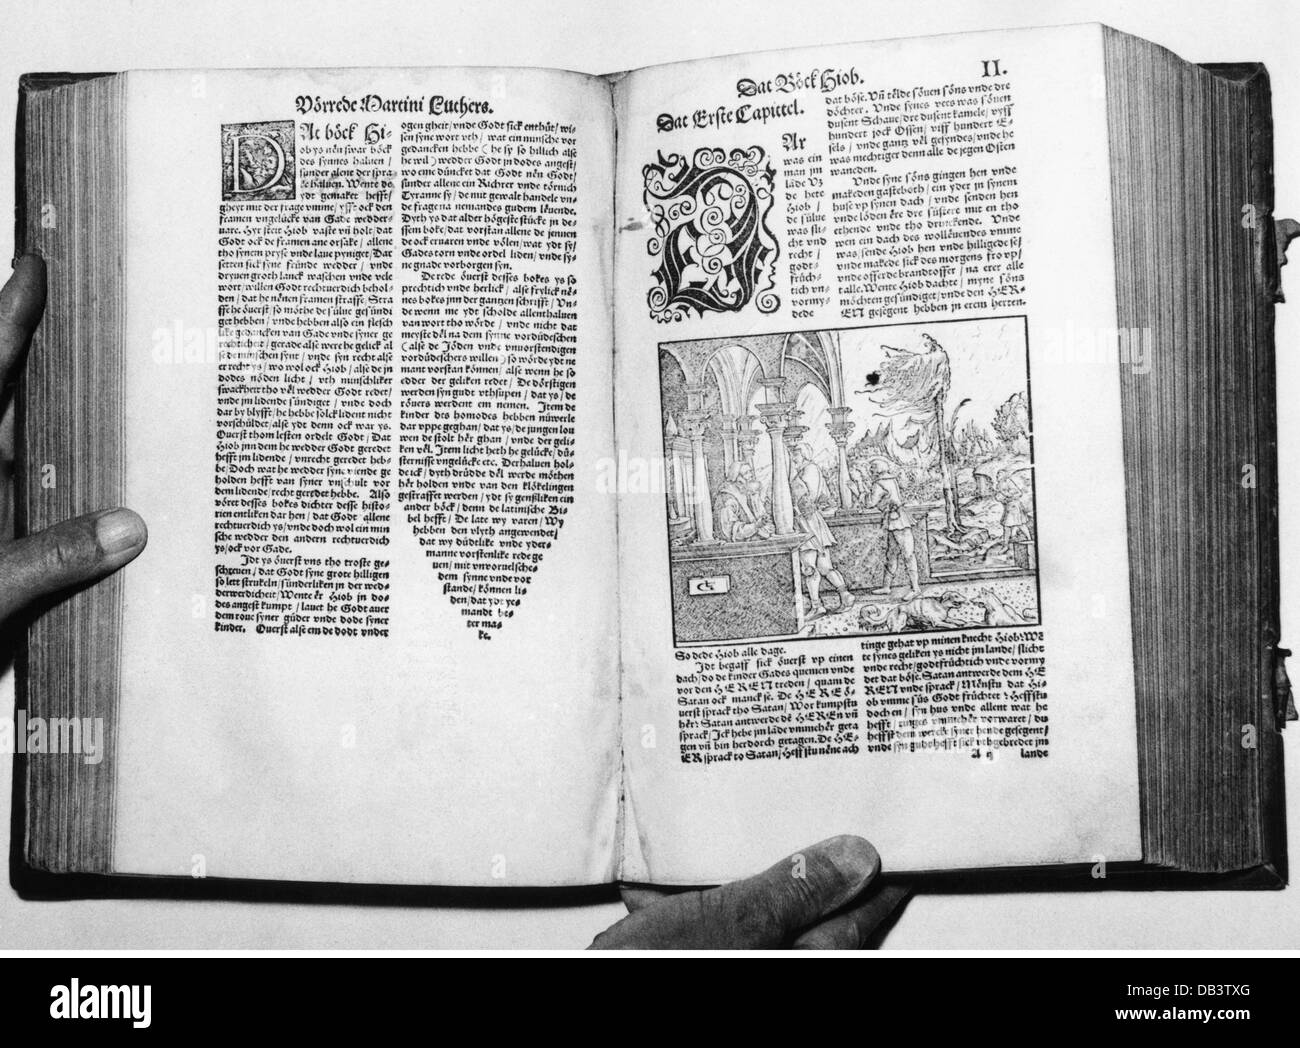 literature, Bible, Windsheim Bible, with a chapter foreword by Martin Luther, circa 1535, exhibited during 9th German - Stock Image